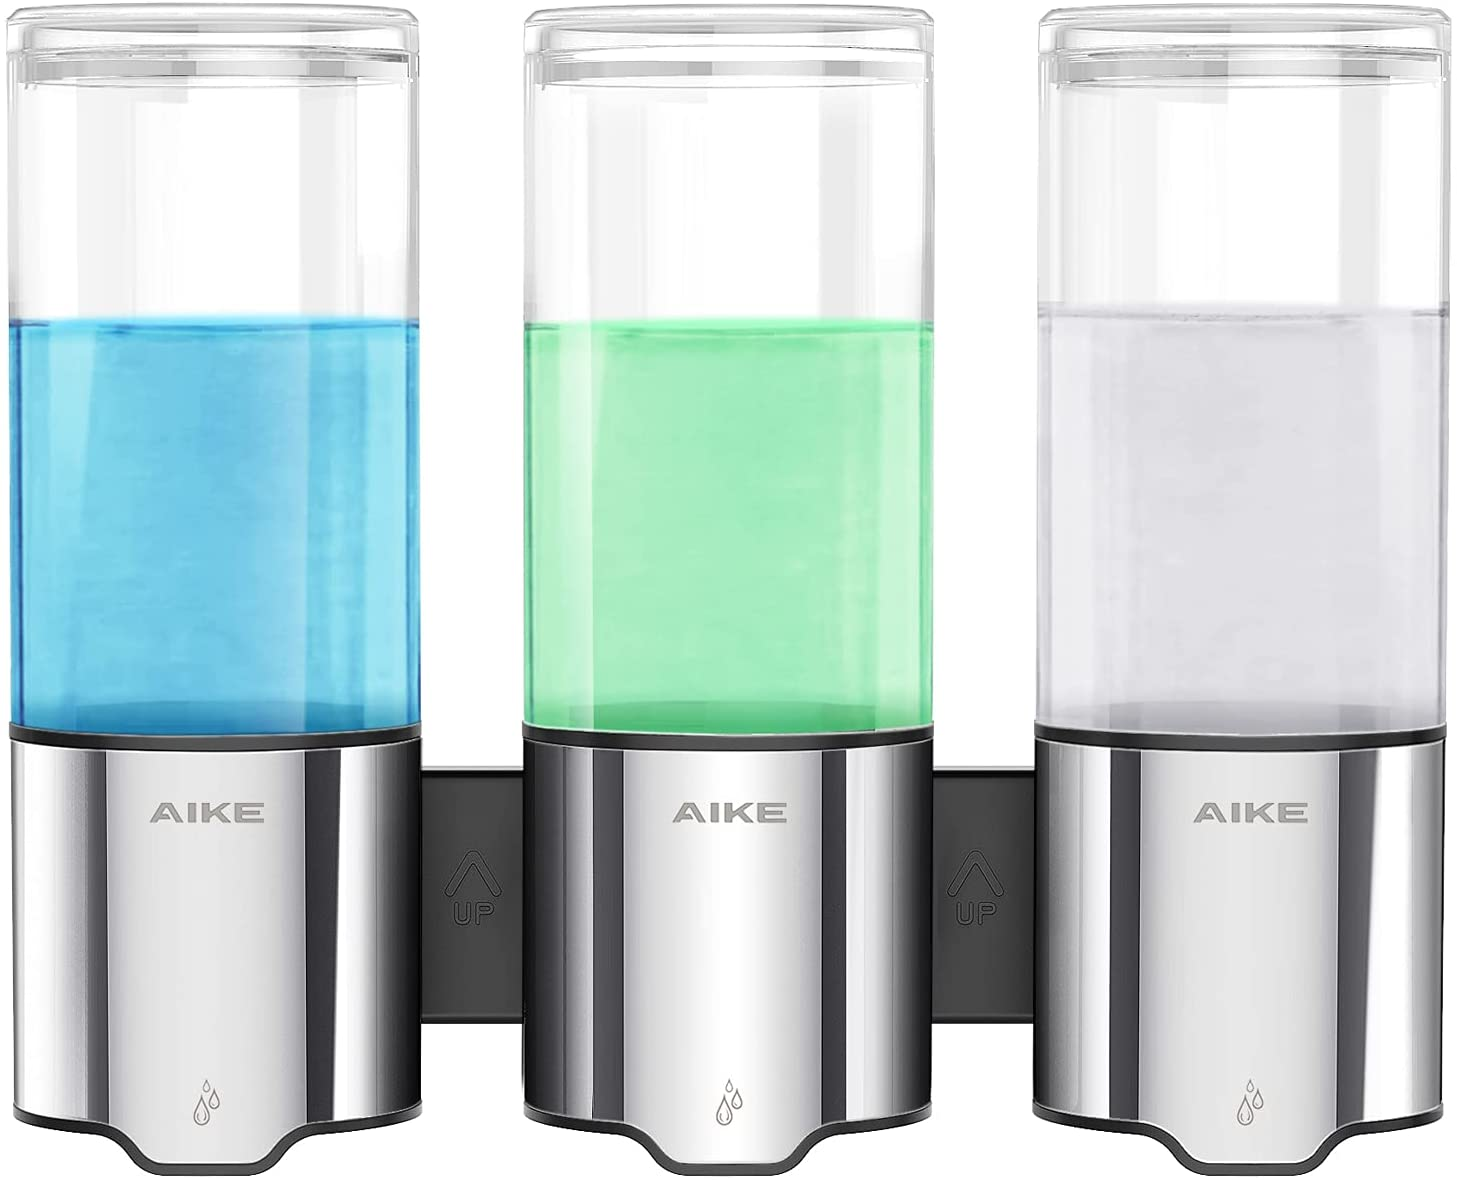 AIKE Triple Automatic Soap and Shower Dispenser Wall Mount 3 Chambers IPX7 Waterproof 3 x 17 fl oz.